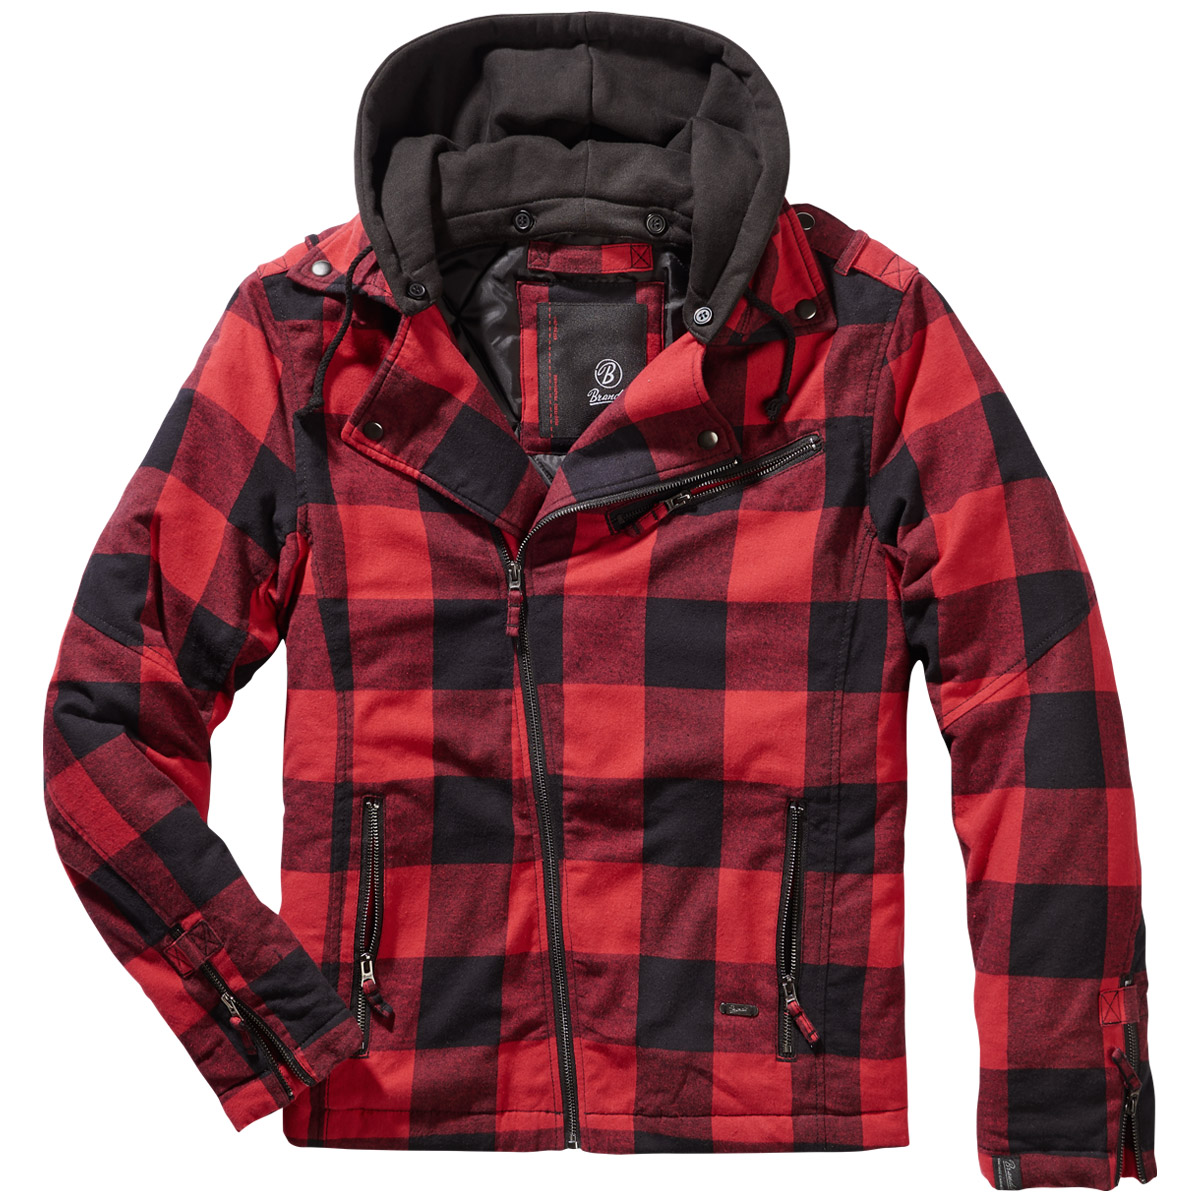 Find a selection of Plaid Coats, including Men's Plaid Coats, Women's Plaid Coats, Kids Plaid Coats and more at Macy's.